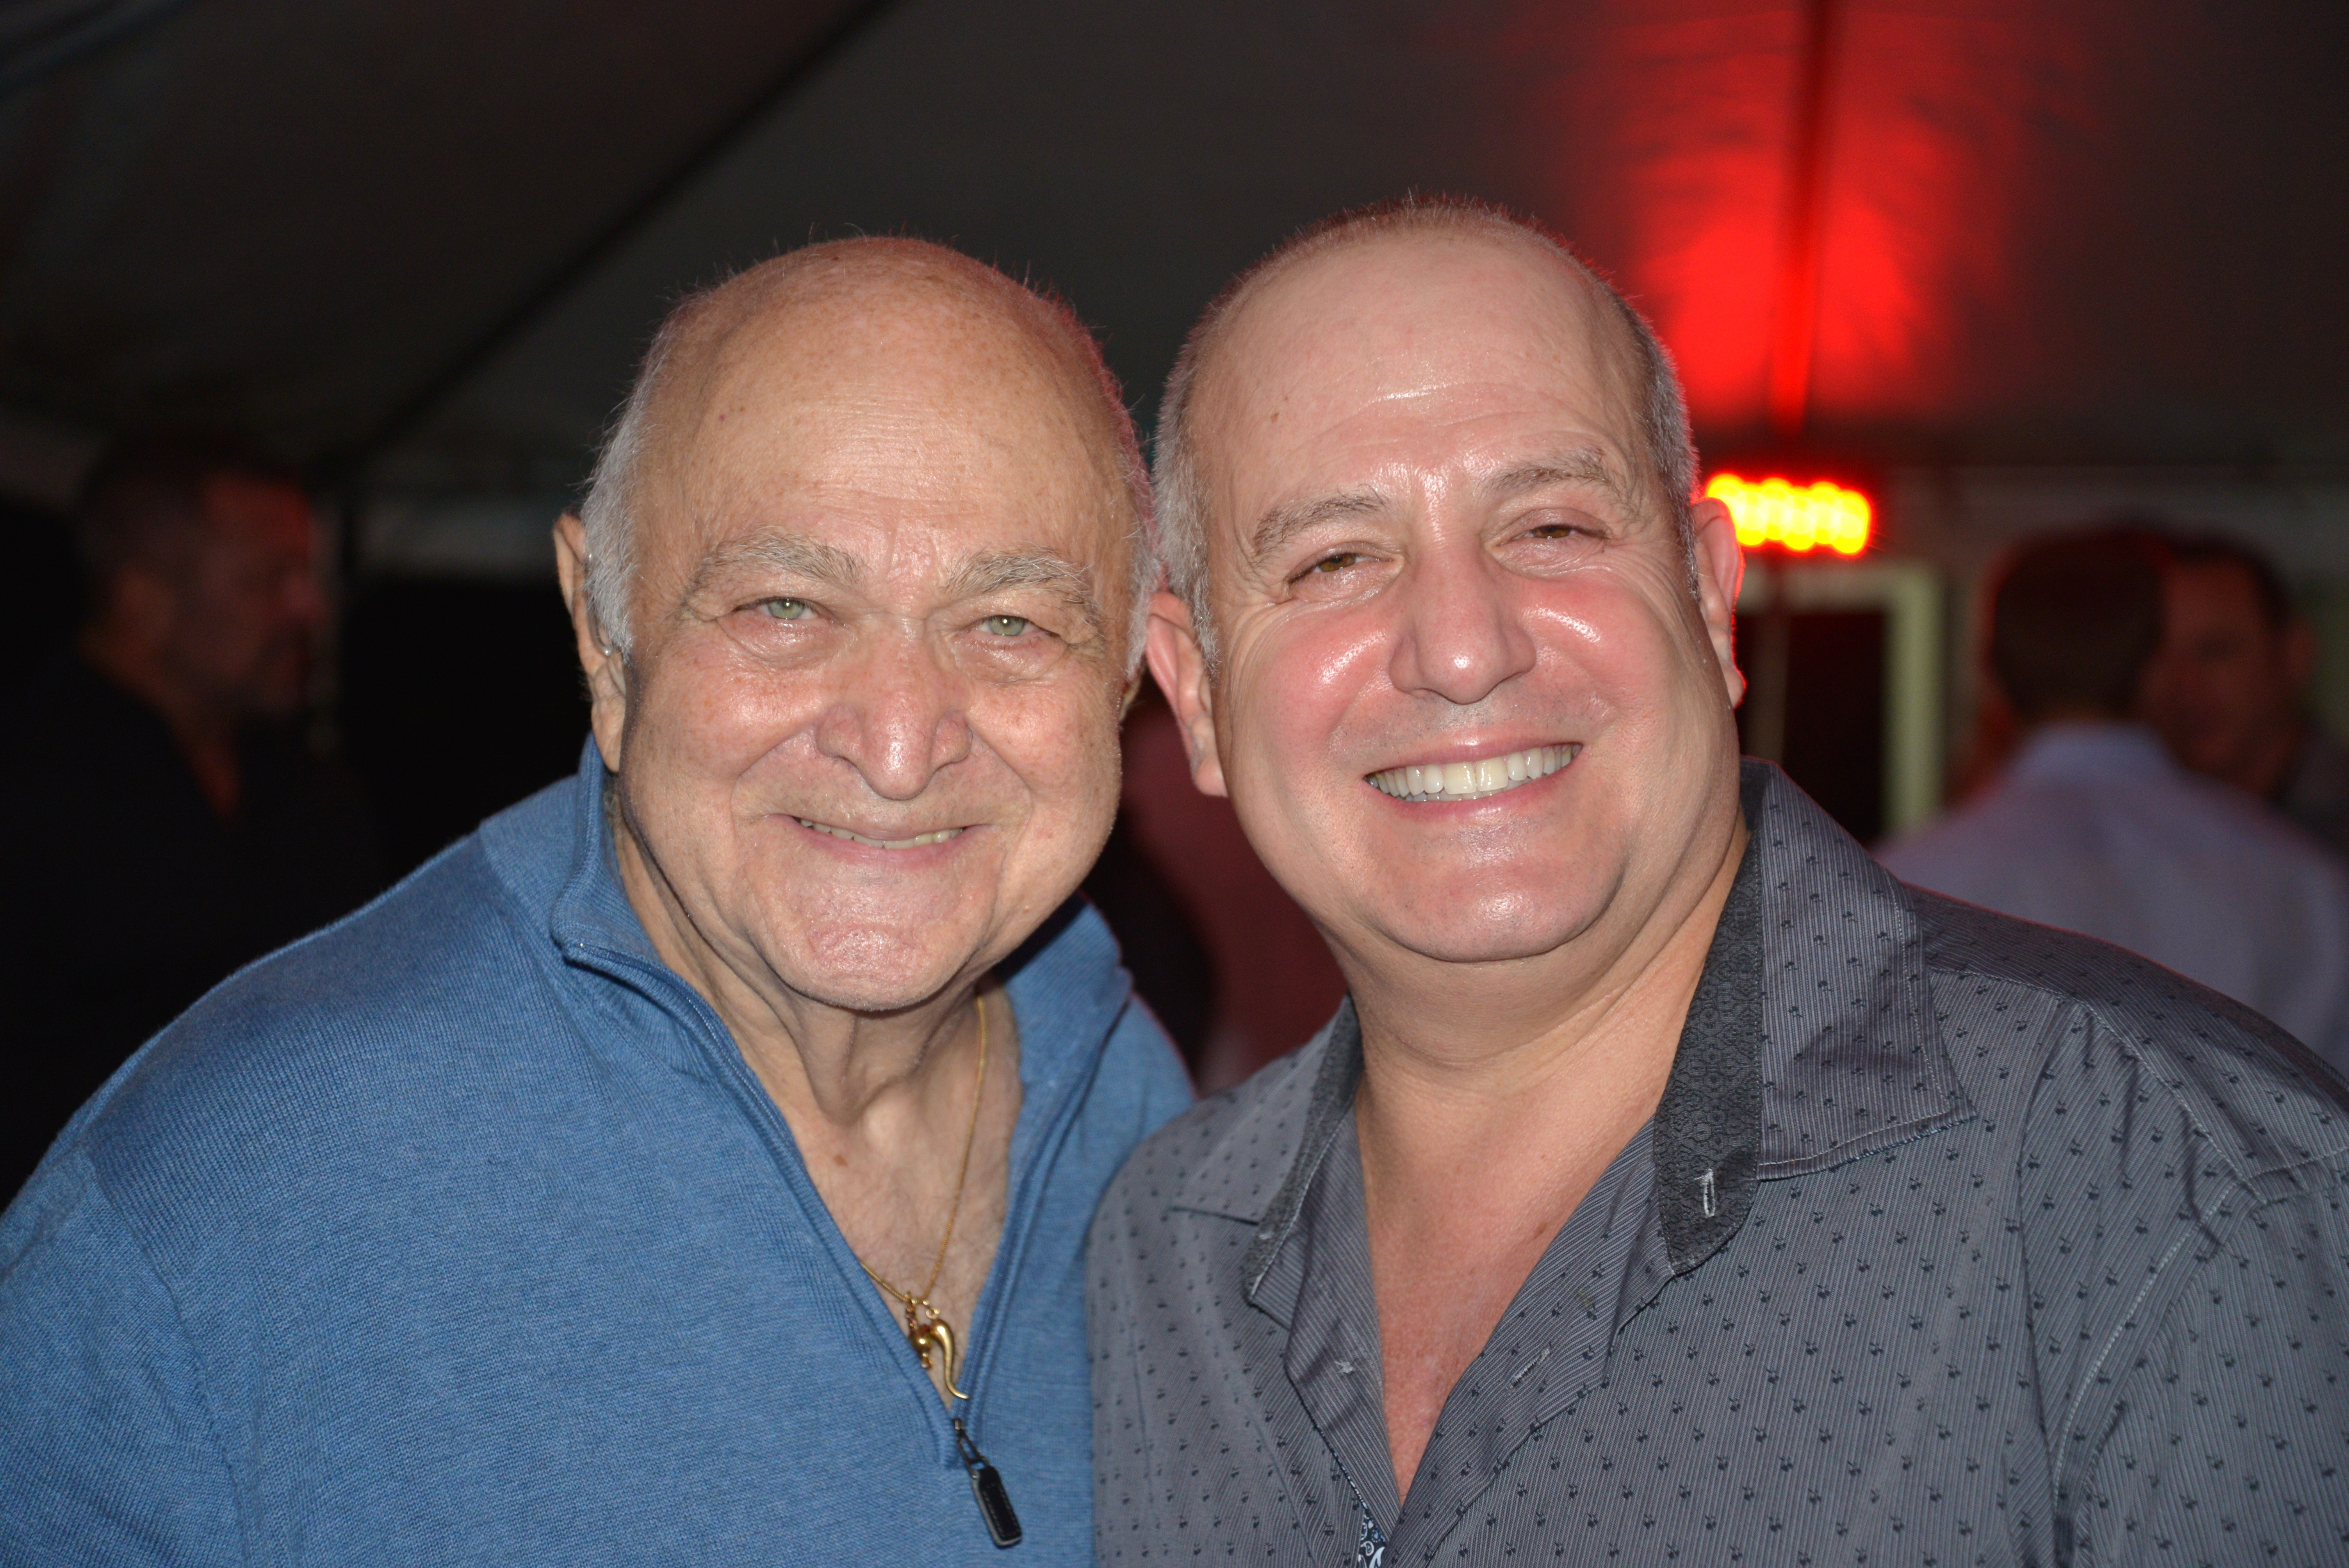 Pompano Bill and Mayor Resnick at the 2013 Evening in Paradise